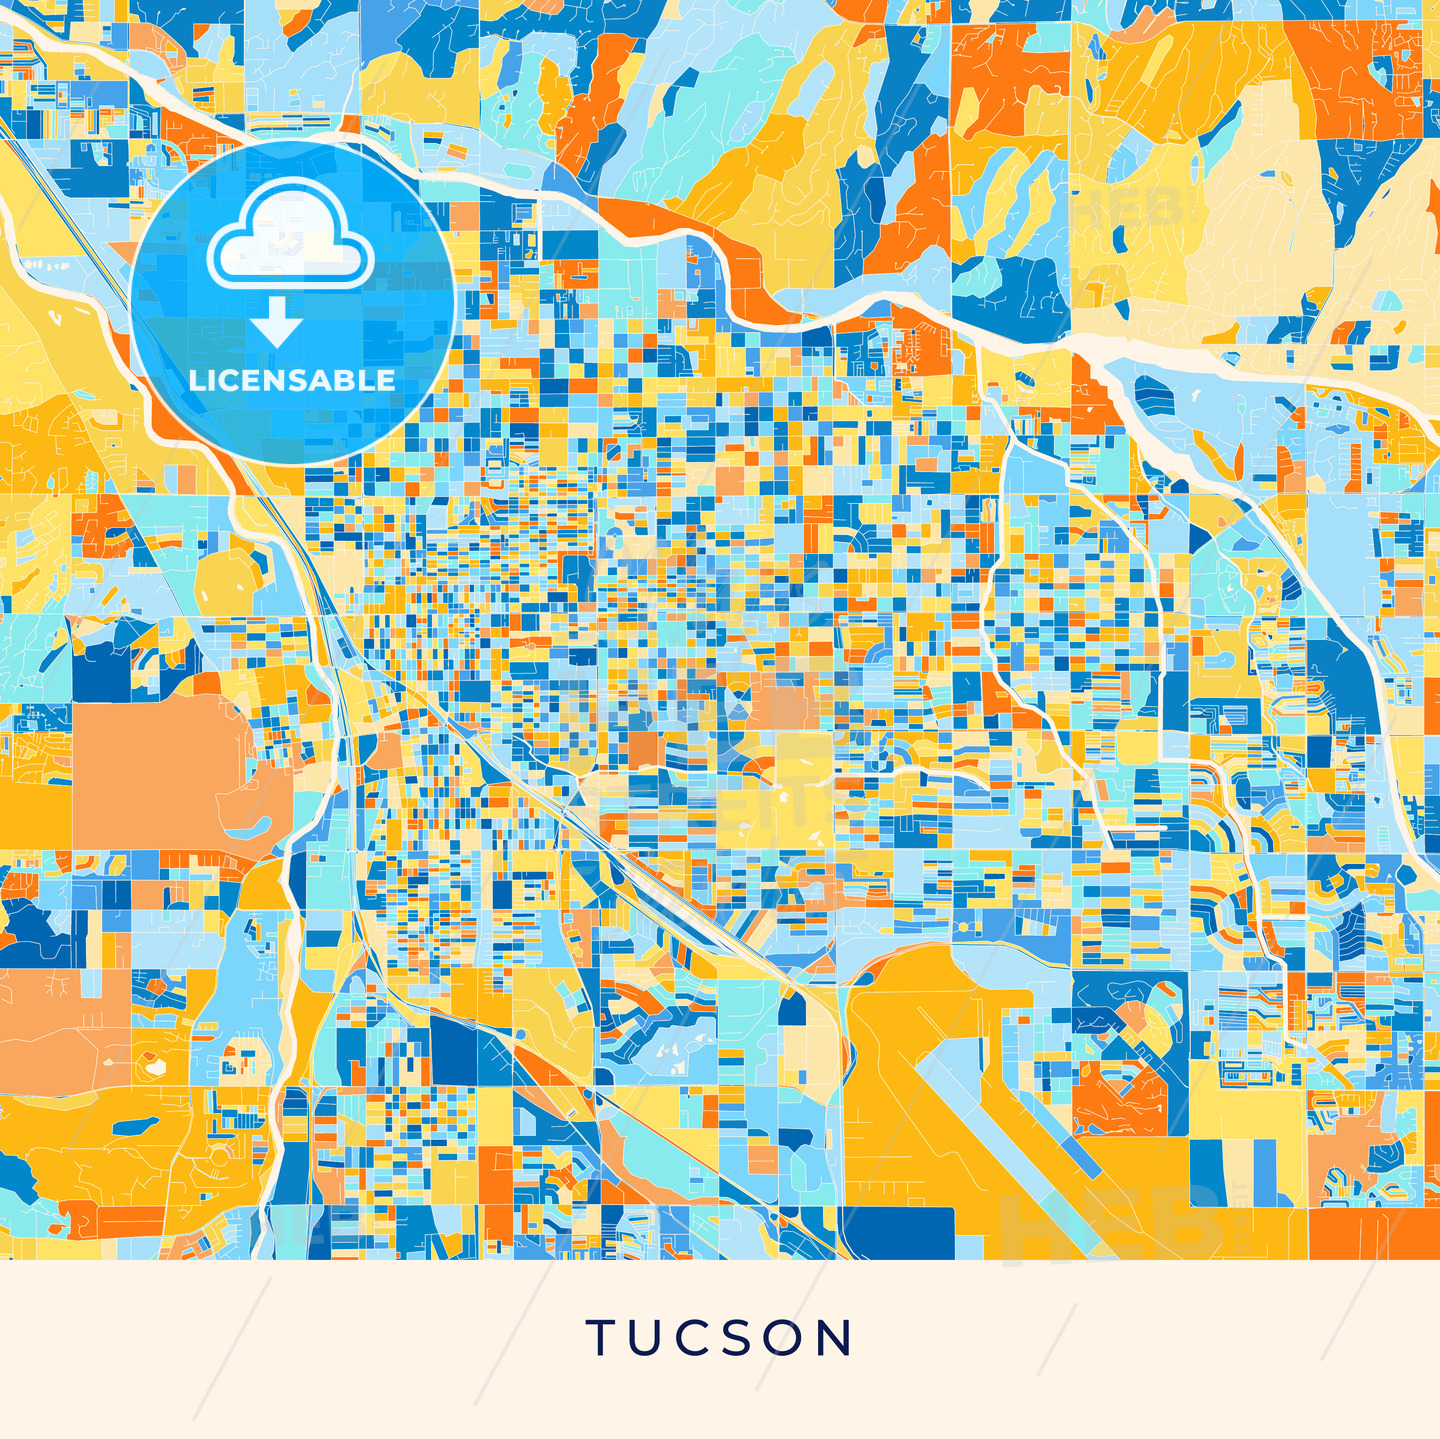 image relating to Printable Map of Tucson Az named Tucson vibrant map poster template